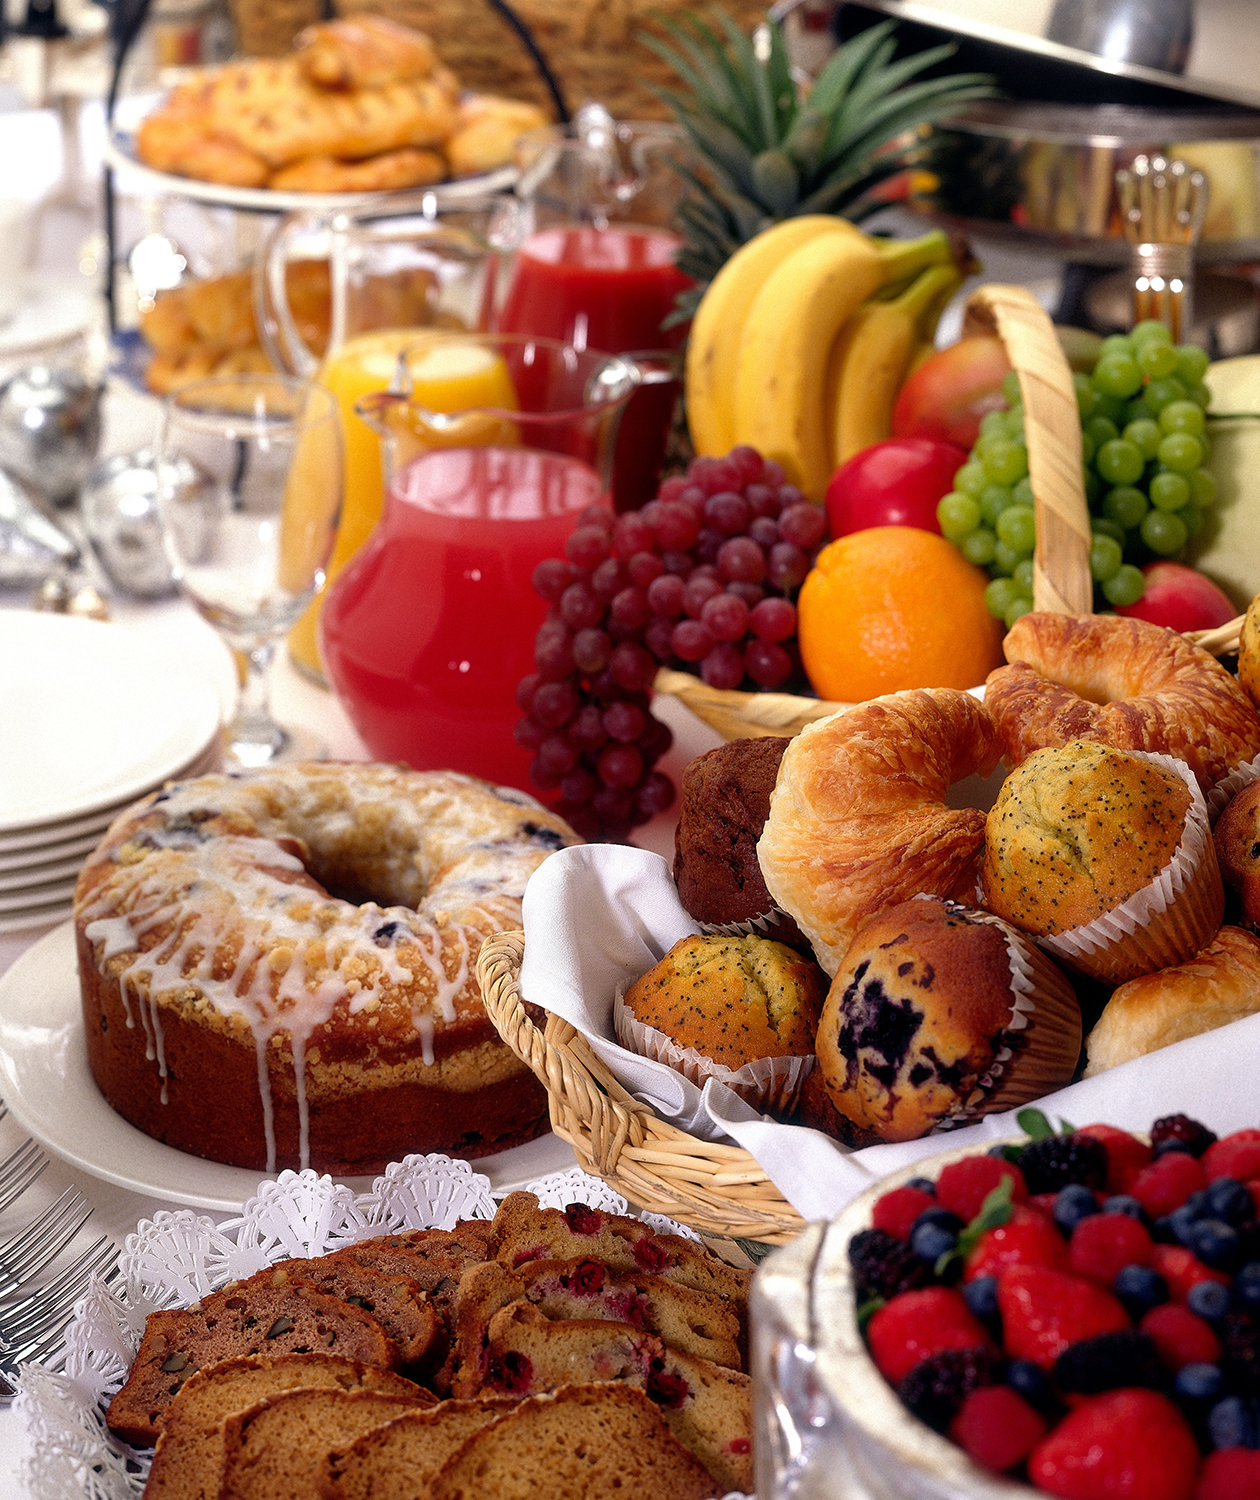 Breakfast buffet with cakes, muffins, fruit, juice